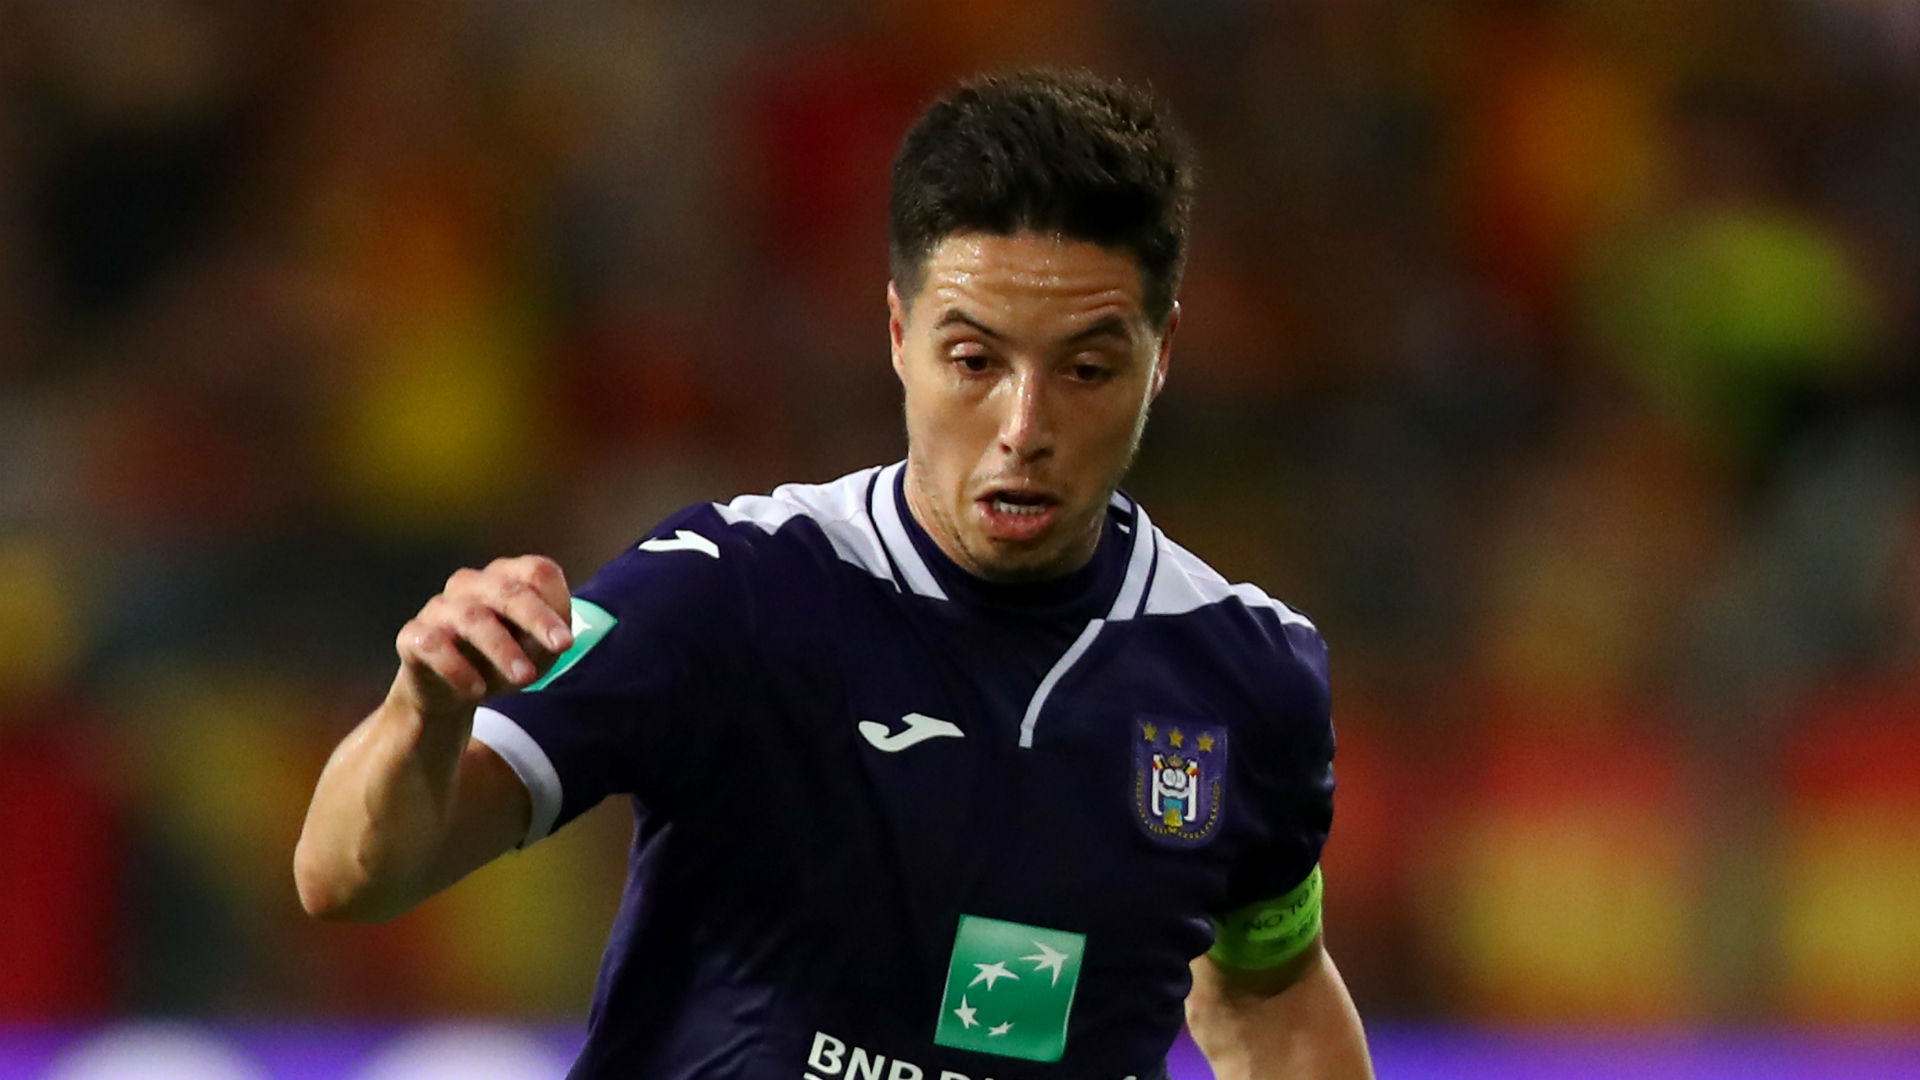 Coronavirus: It makes no sense – Nasri denies reports of going AWOL during self-isolation